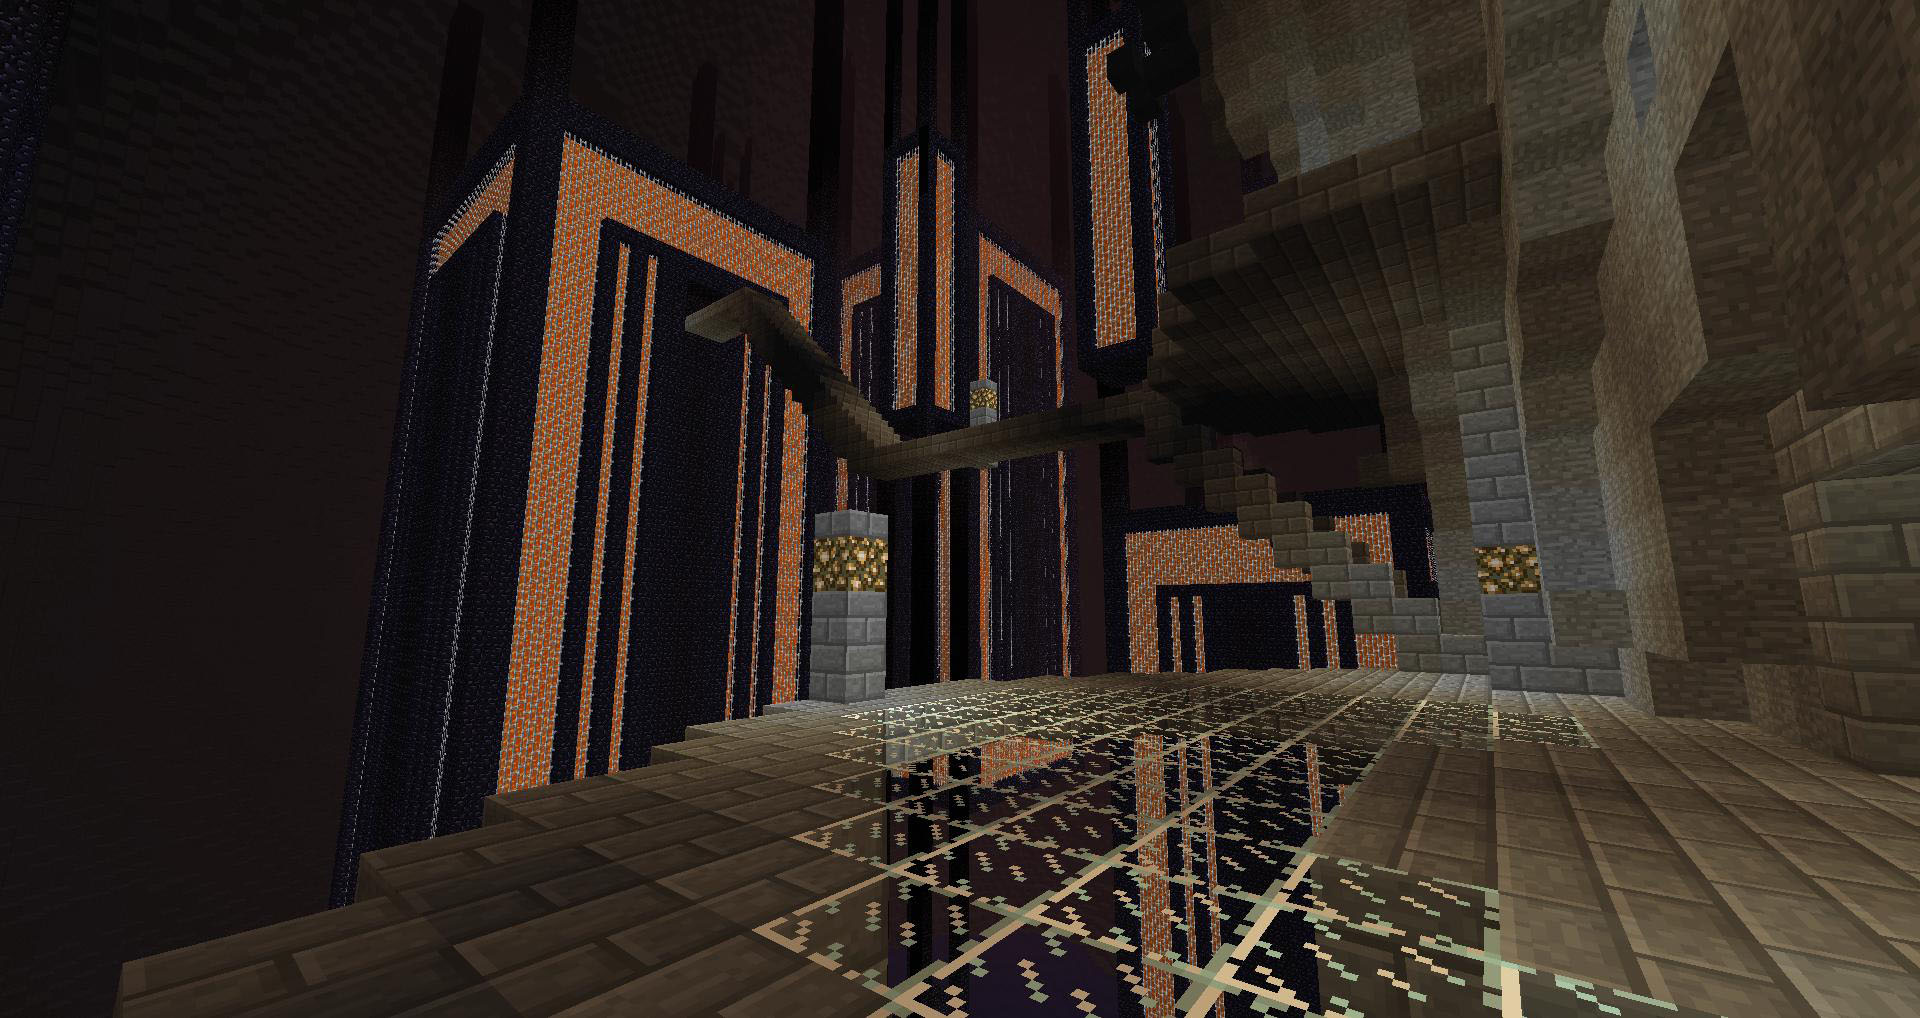 http://minecraft-forum.net/wp-content/uploads/2013/08/e0b02__Uncharted-Territory-3-Map-1.jpg